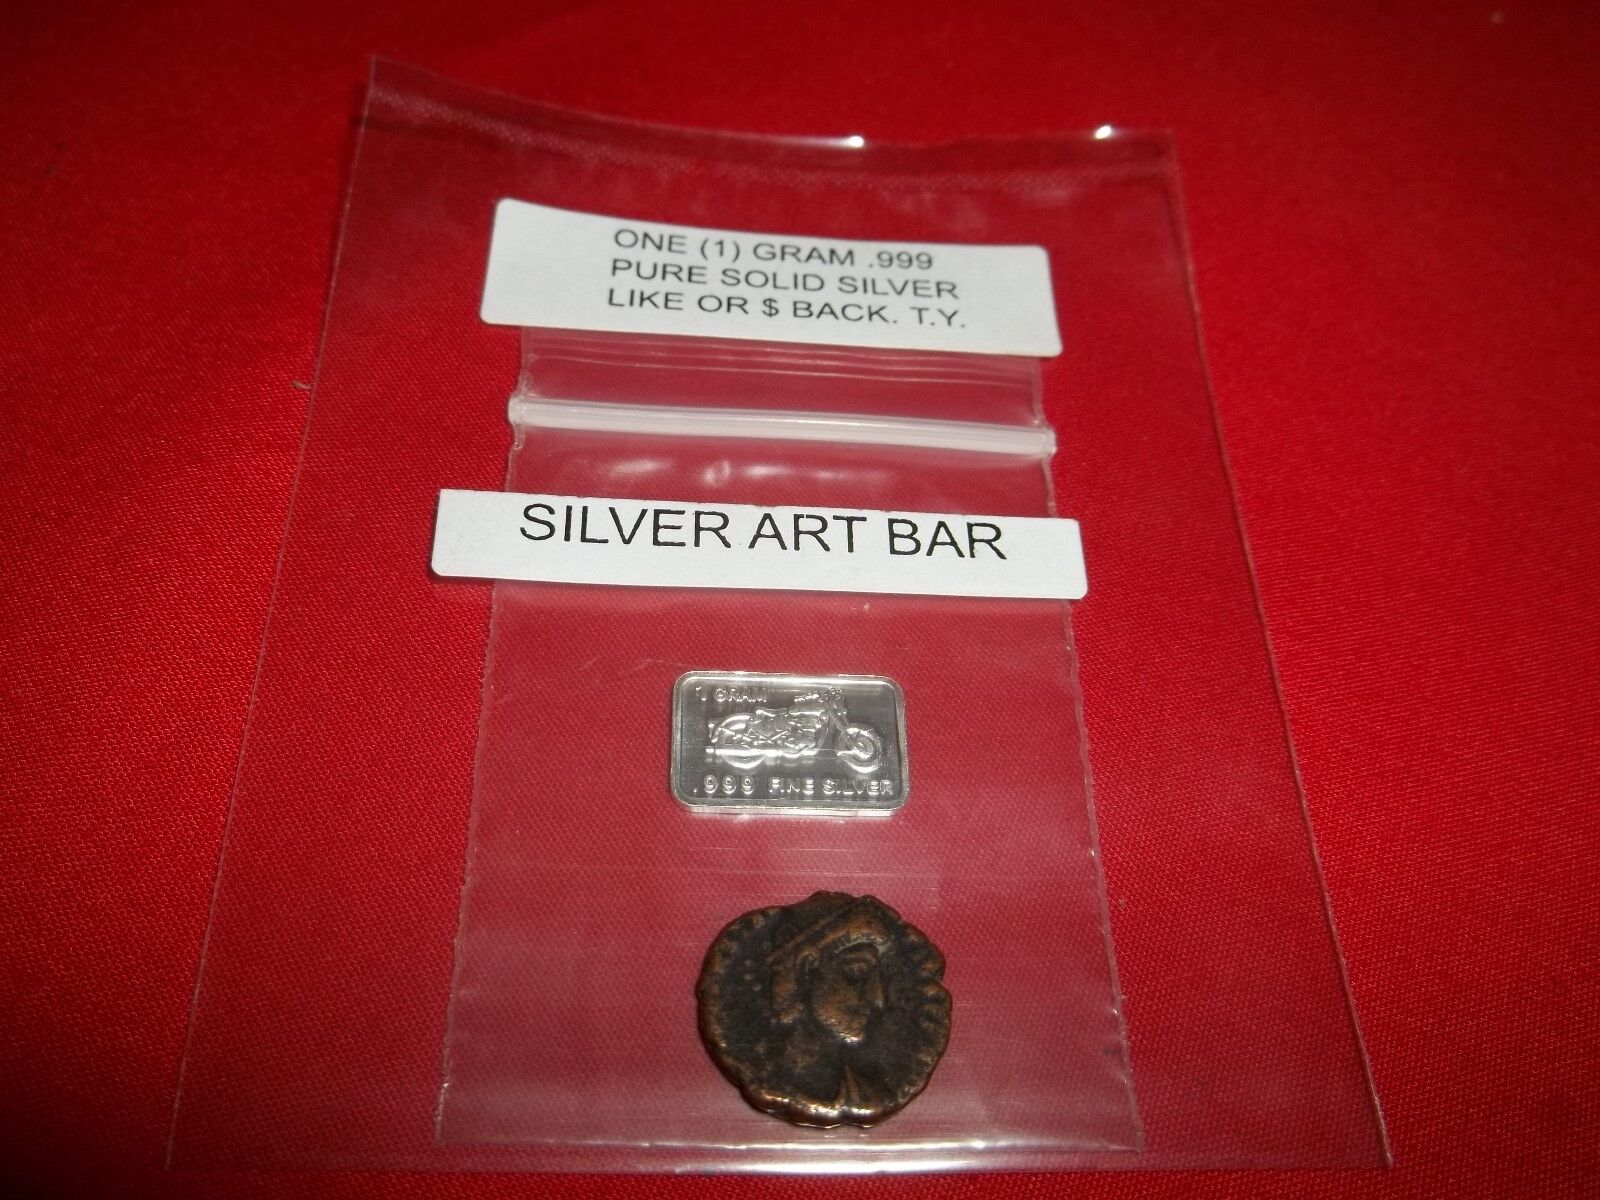 Authentic Ancient Roman 1 Coin, with 1 gram .999 Fine Solid Silver Mini Art-Bar